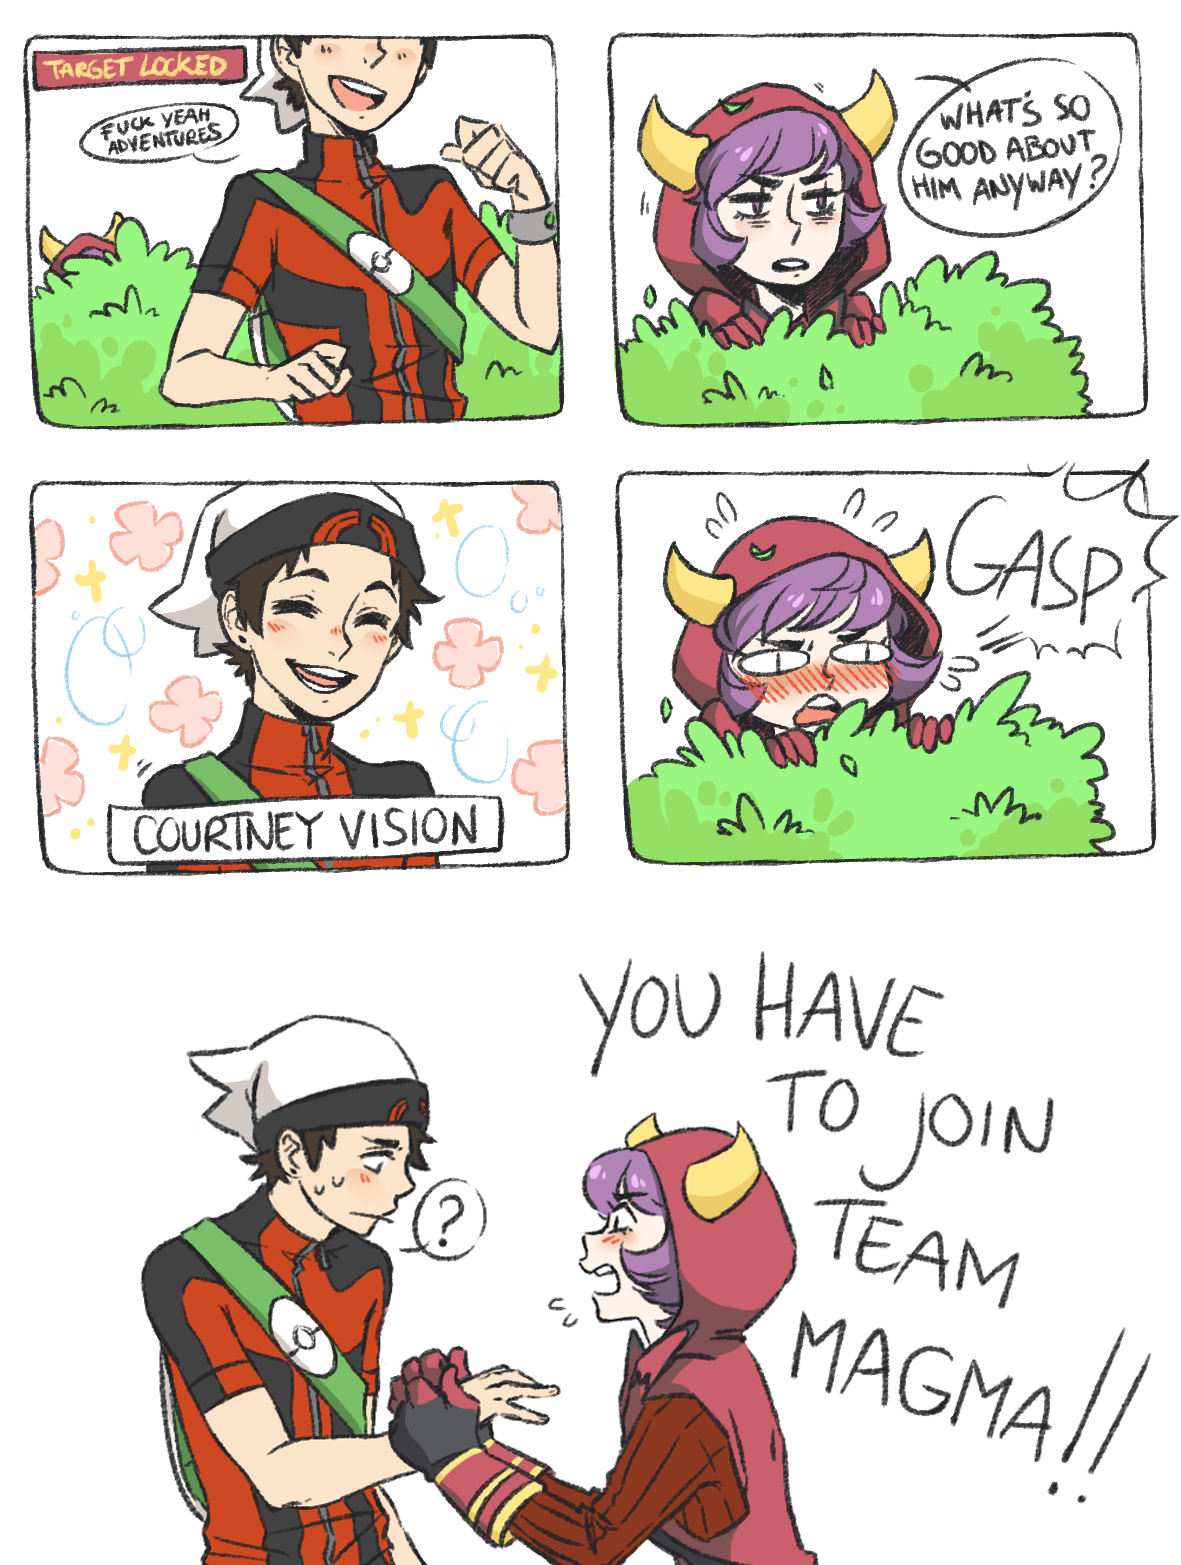 Dating a team magma grunt download itunes 2